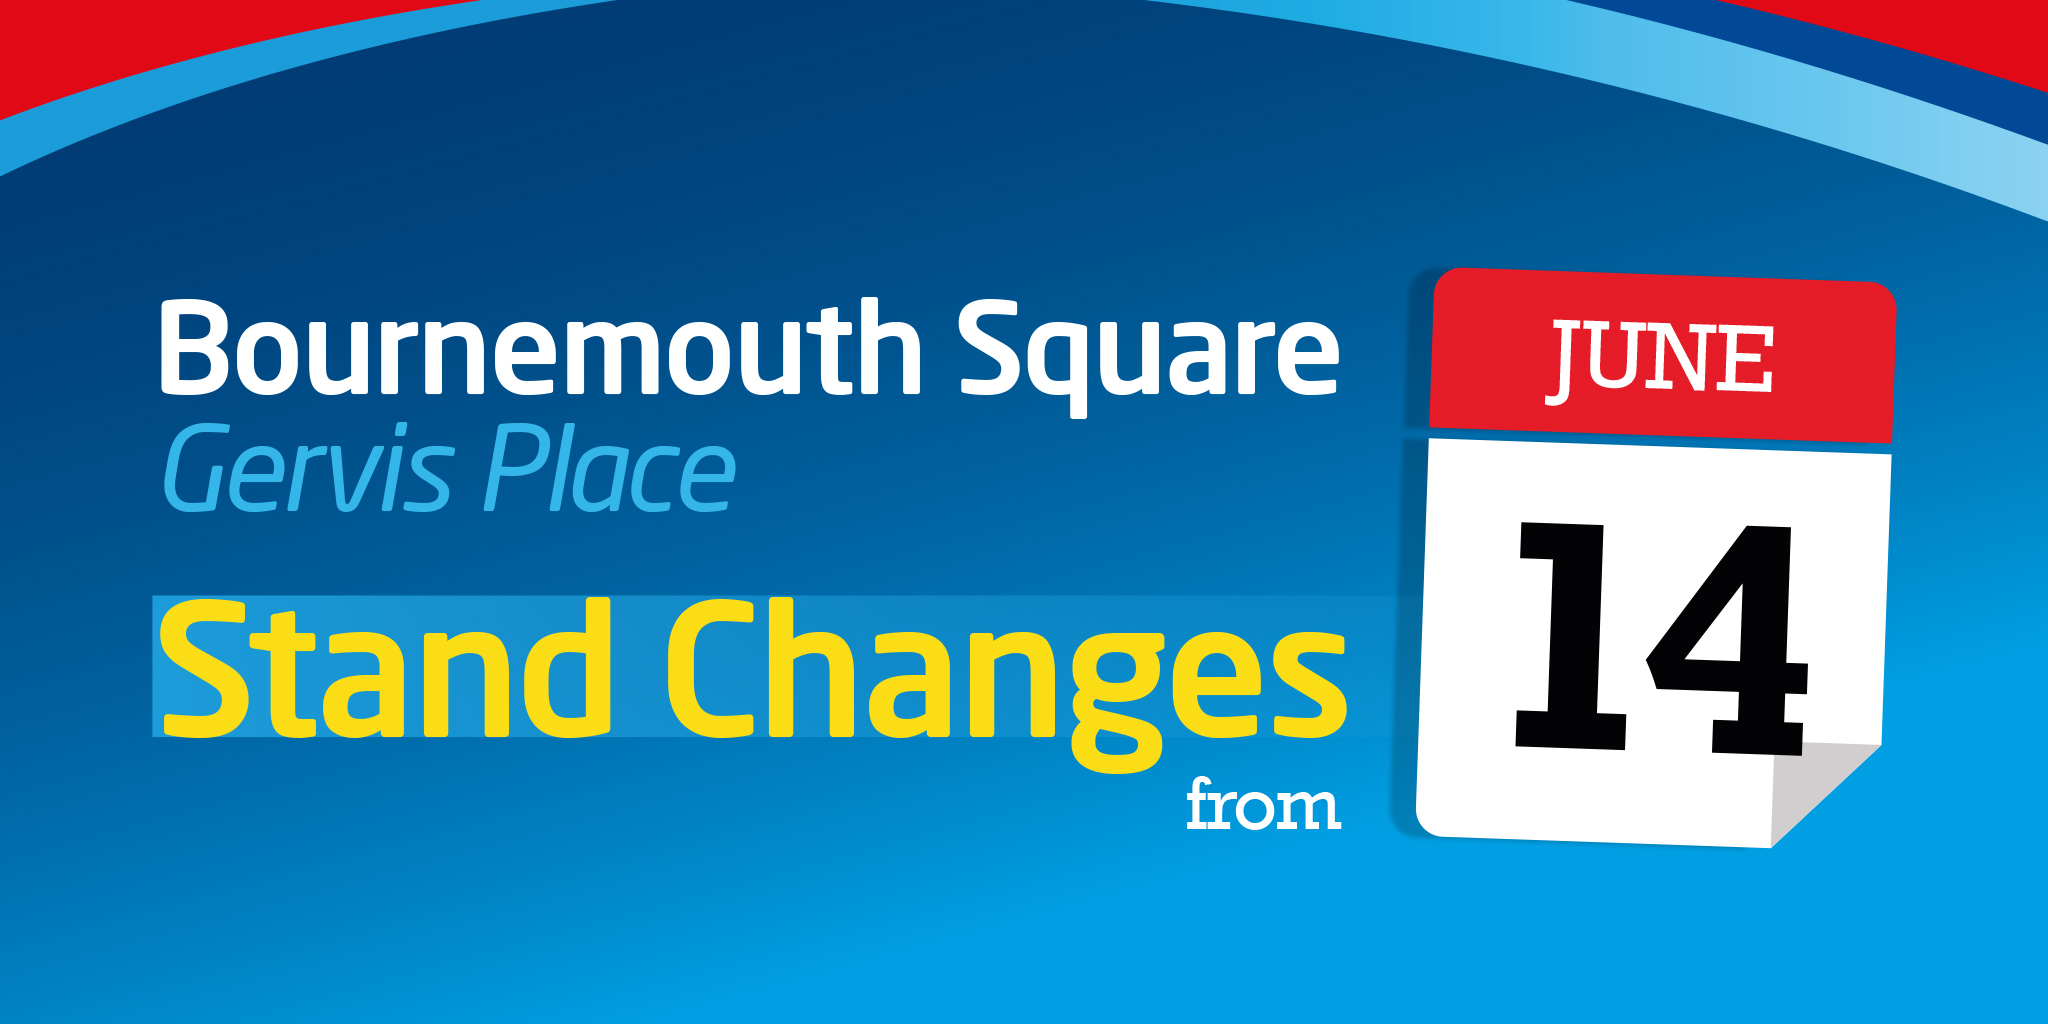 Image reading 'Bournemouth Square Gervis Place Stand Changes from Sunday 14th June'